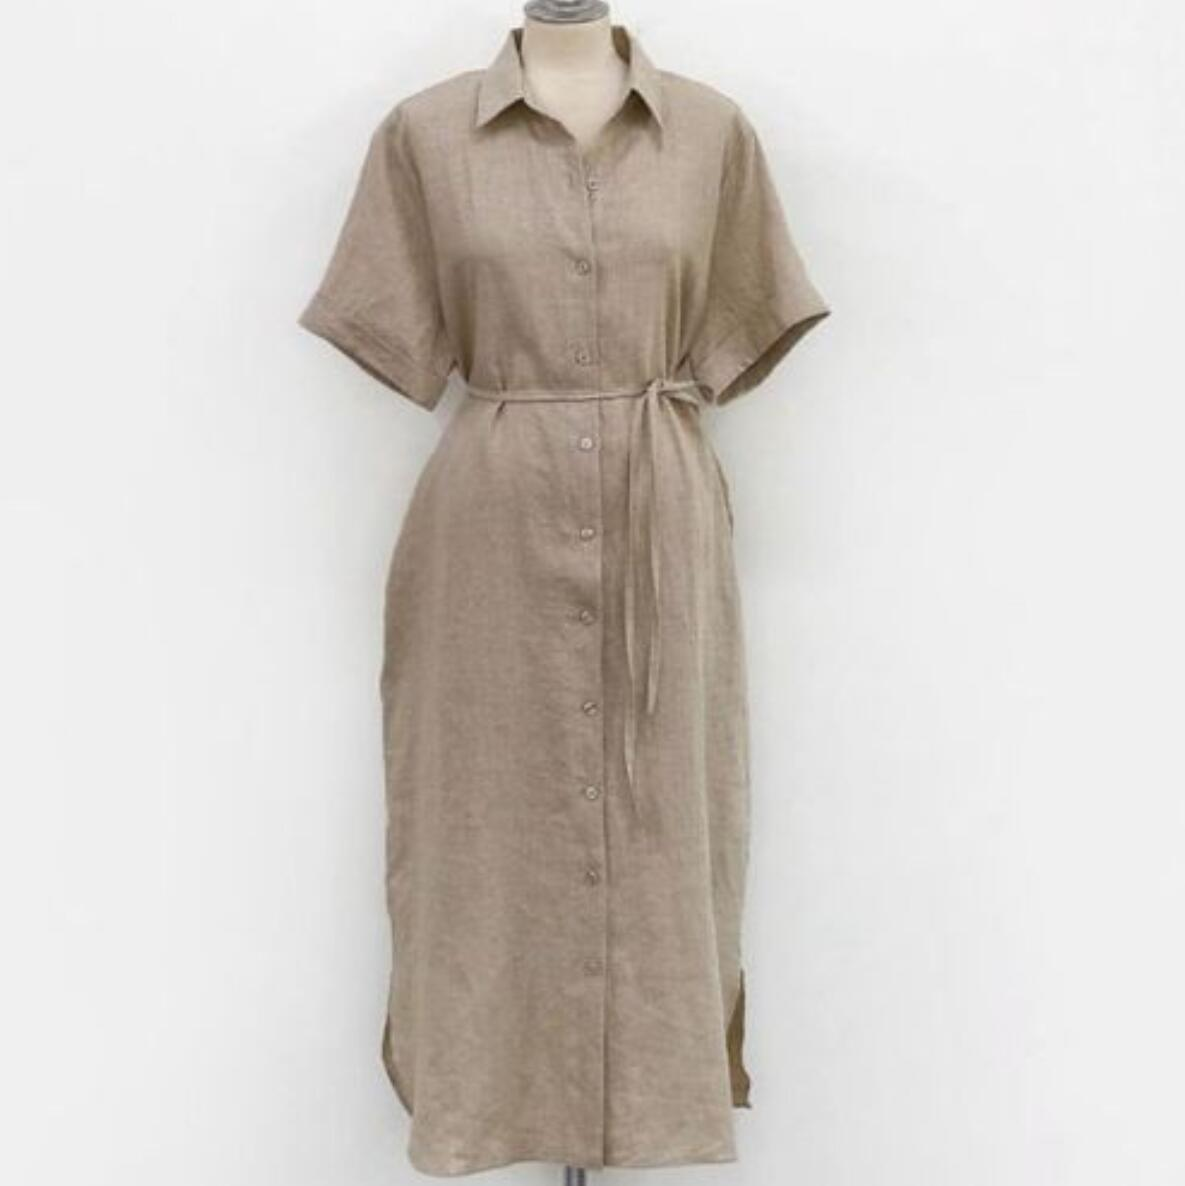 New European Style Spring Long Shirt Dress Women Cotton Linen TIKSUPER